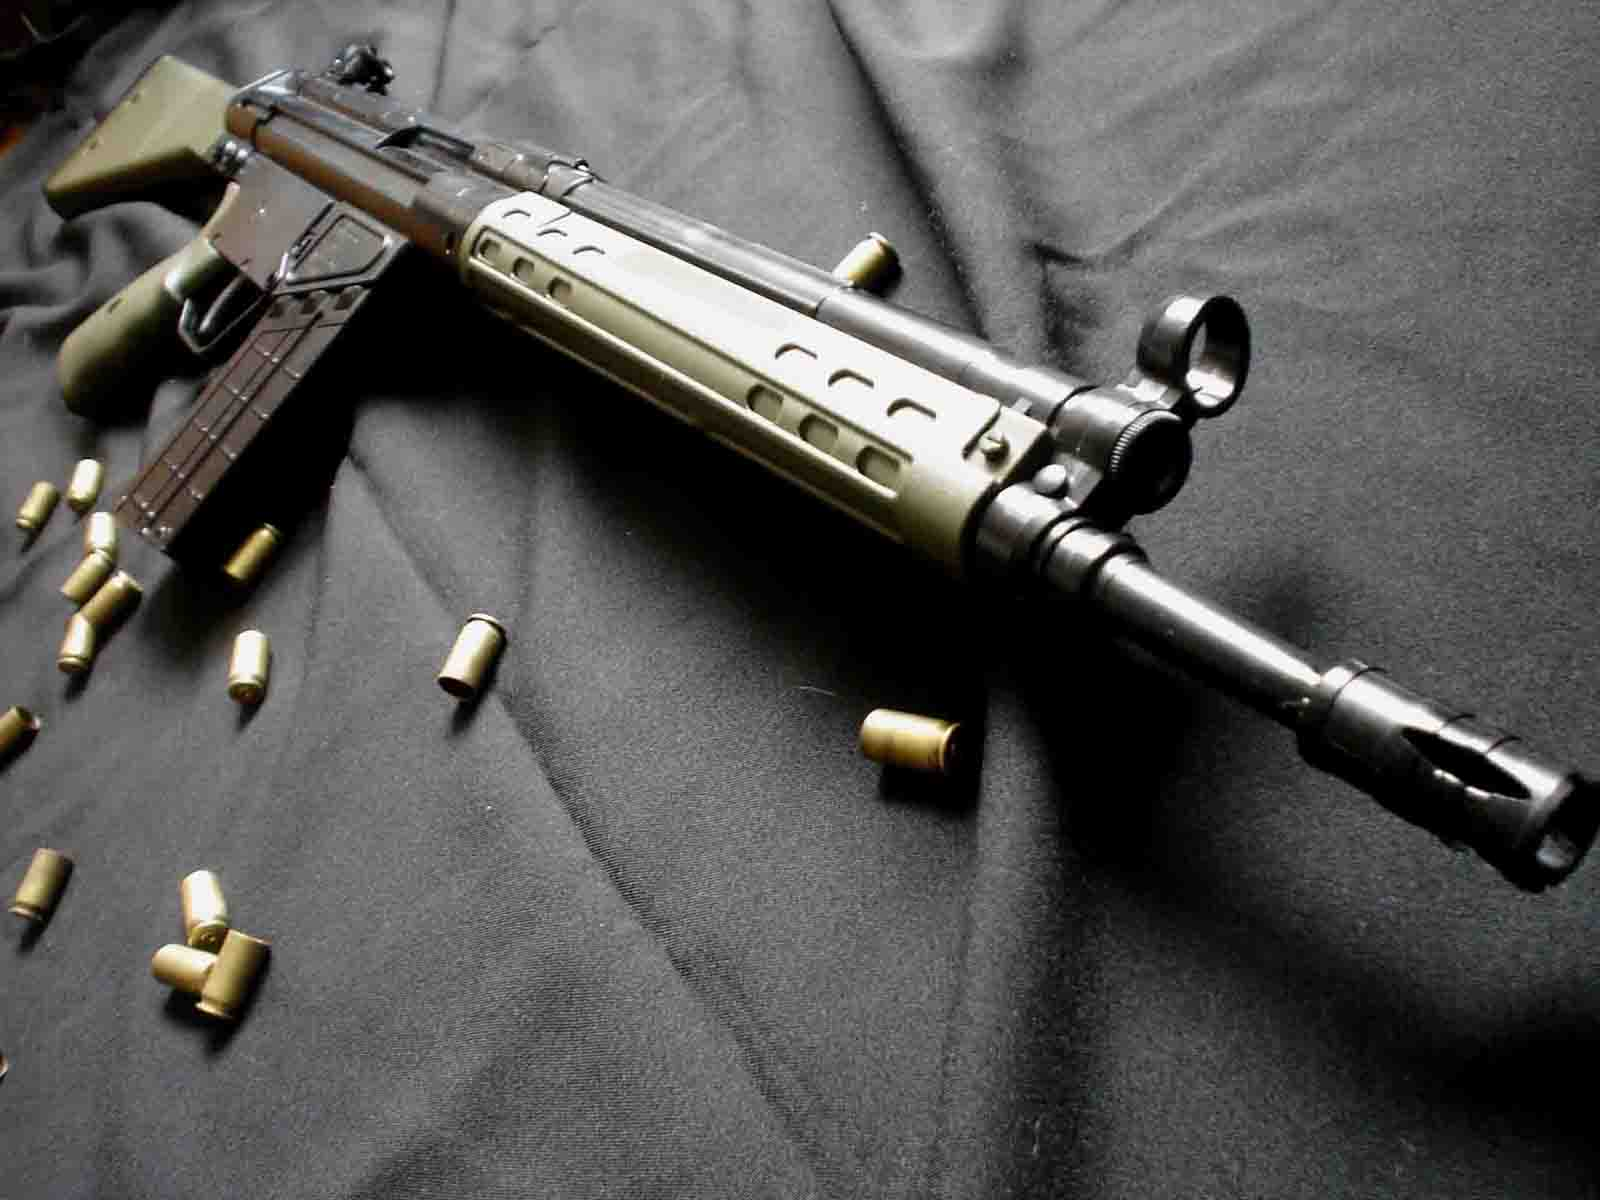 HD Rifle Wallpapers Download Wallpapers in HD for your Desktop 1600x1200